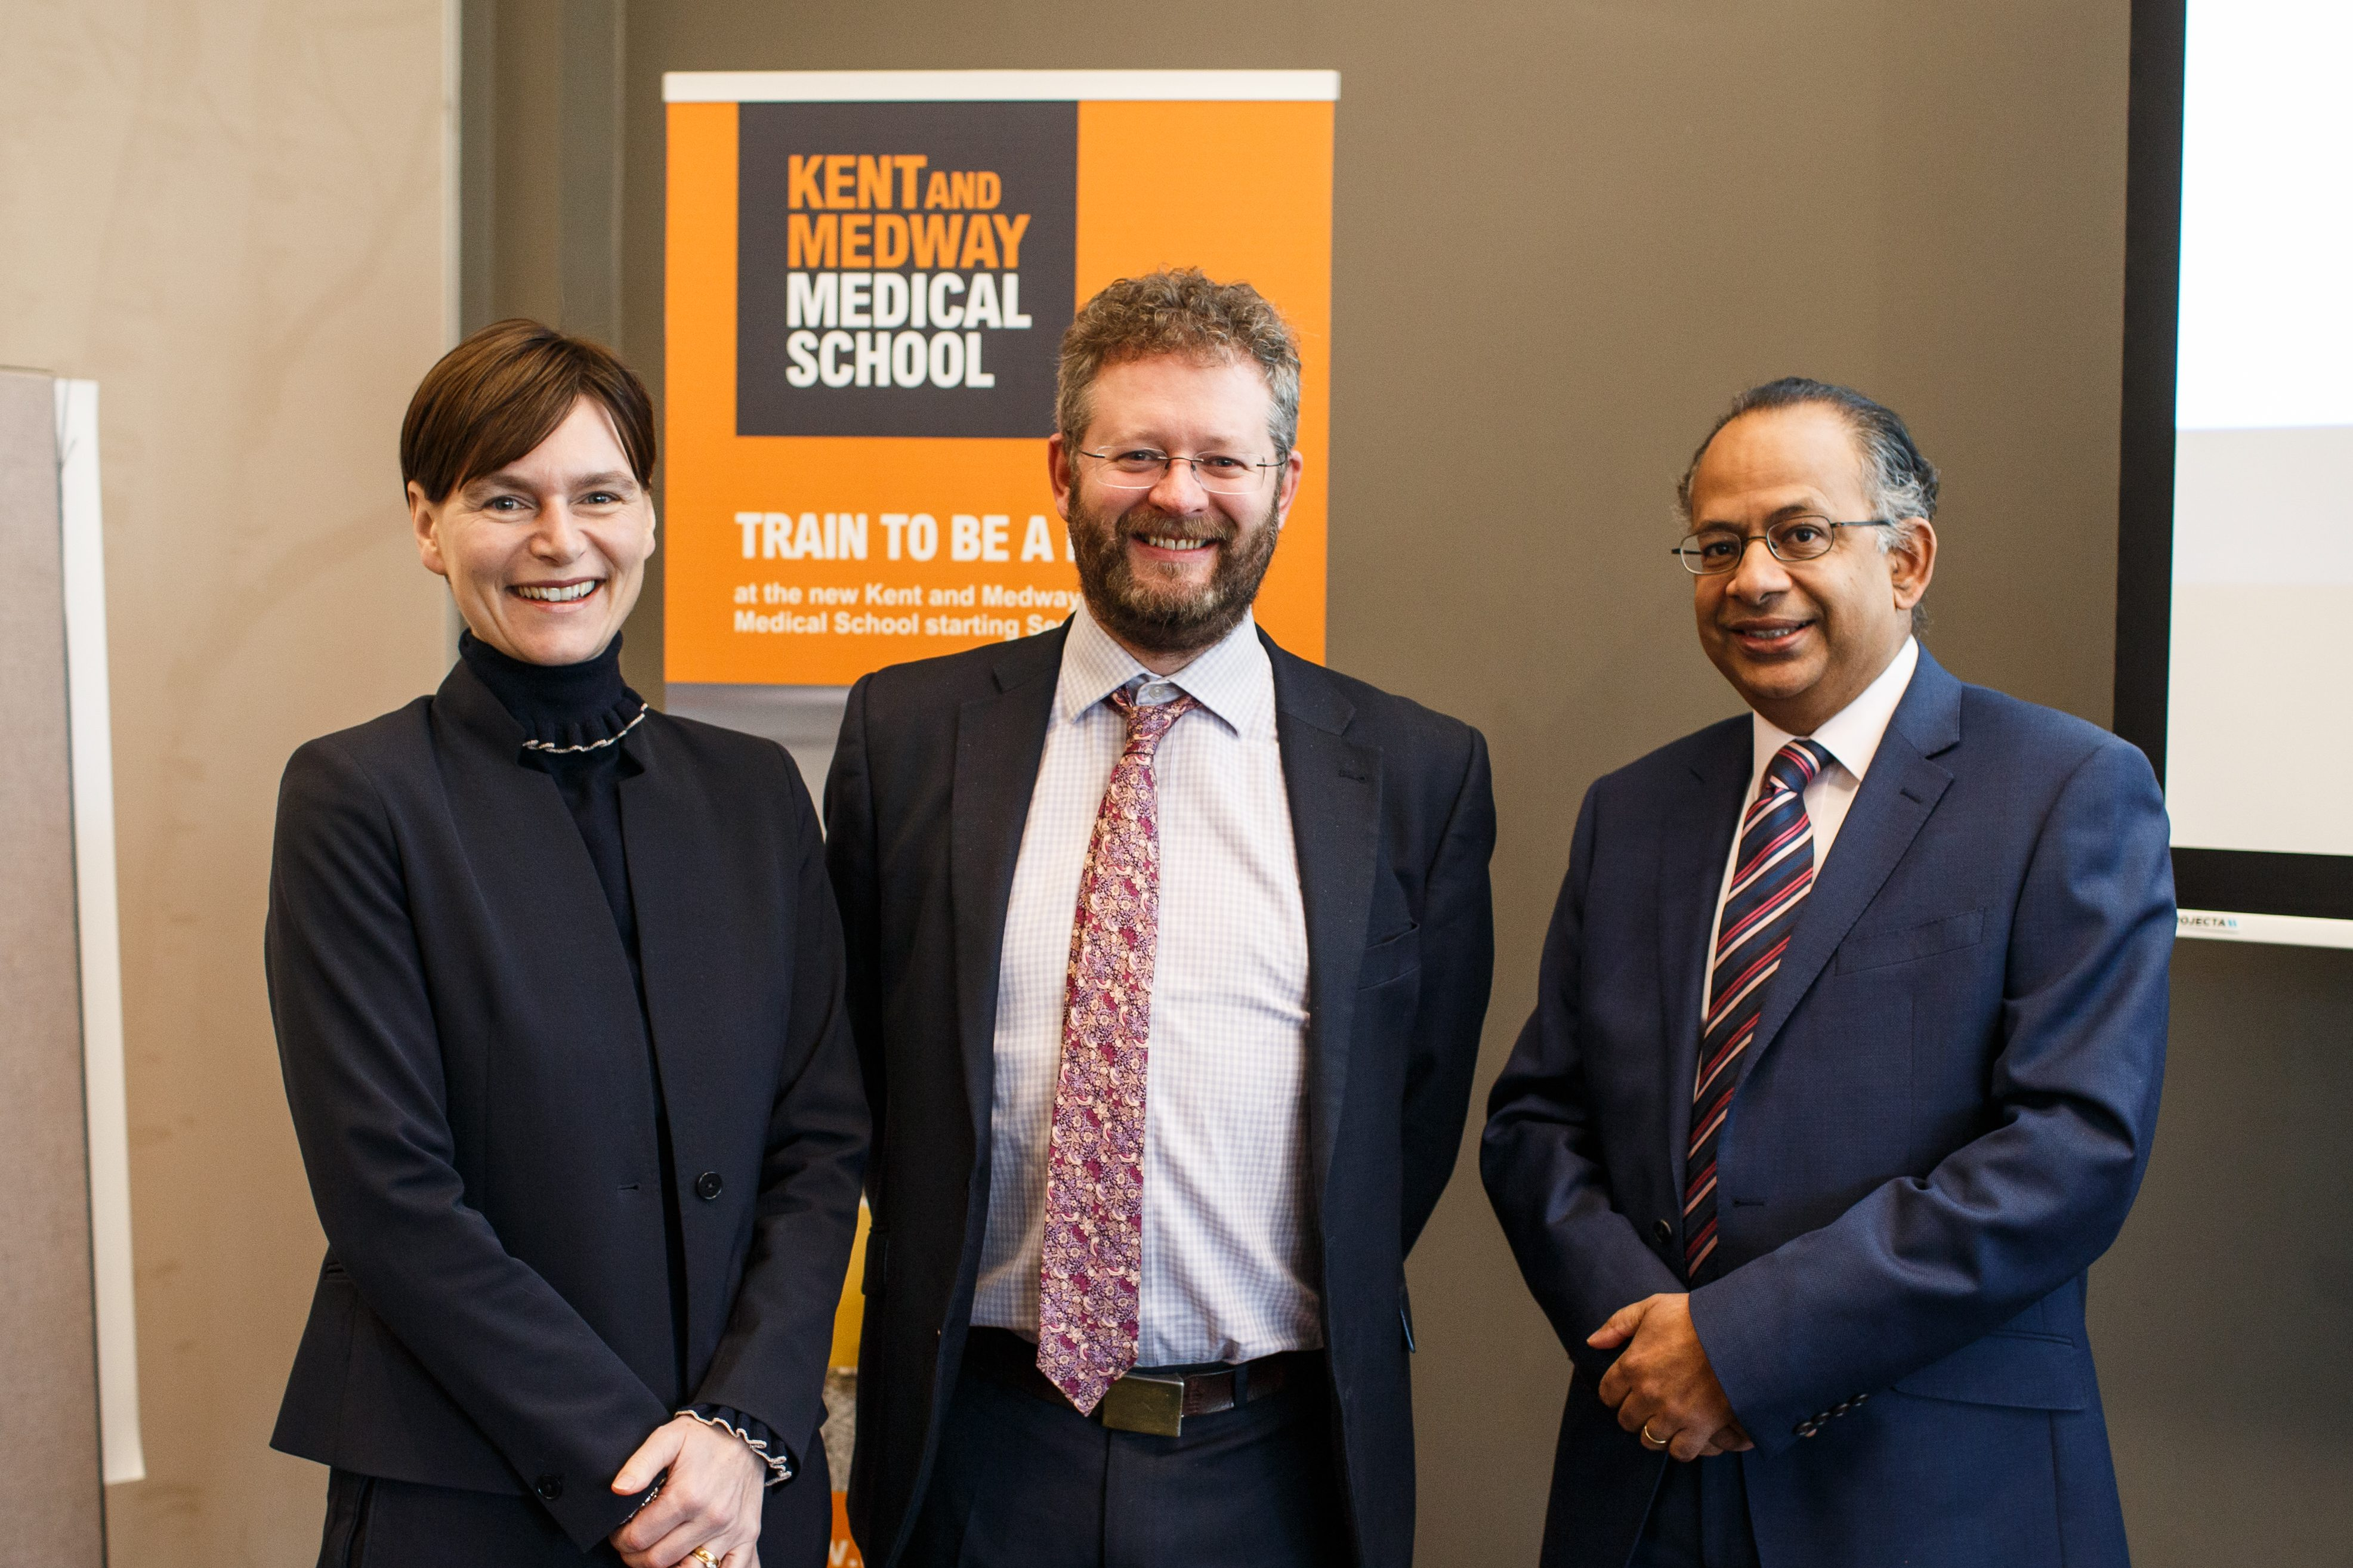 The KMMS celebration day saw the Vice-Chancellors of both universities and Founding Dean of KMMS Professor Chris Holland (centre) discuss the progress of KMMS since its inception a year ago.